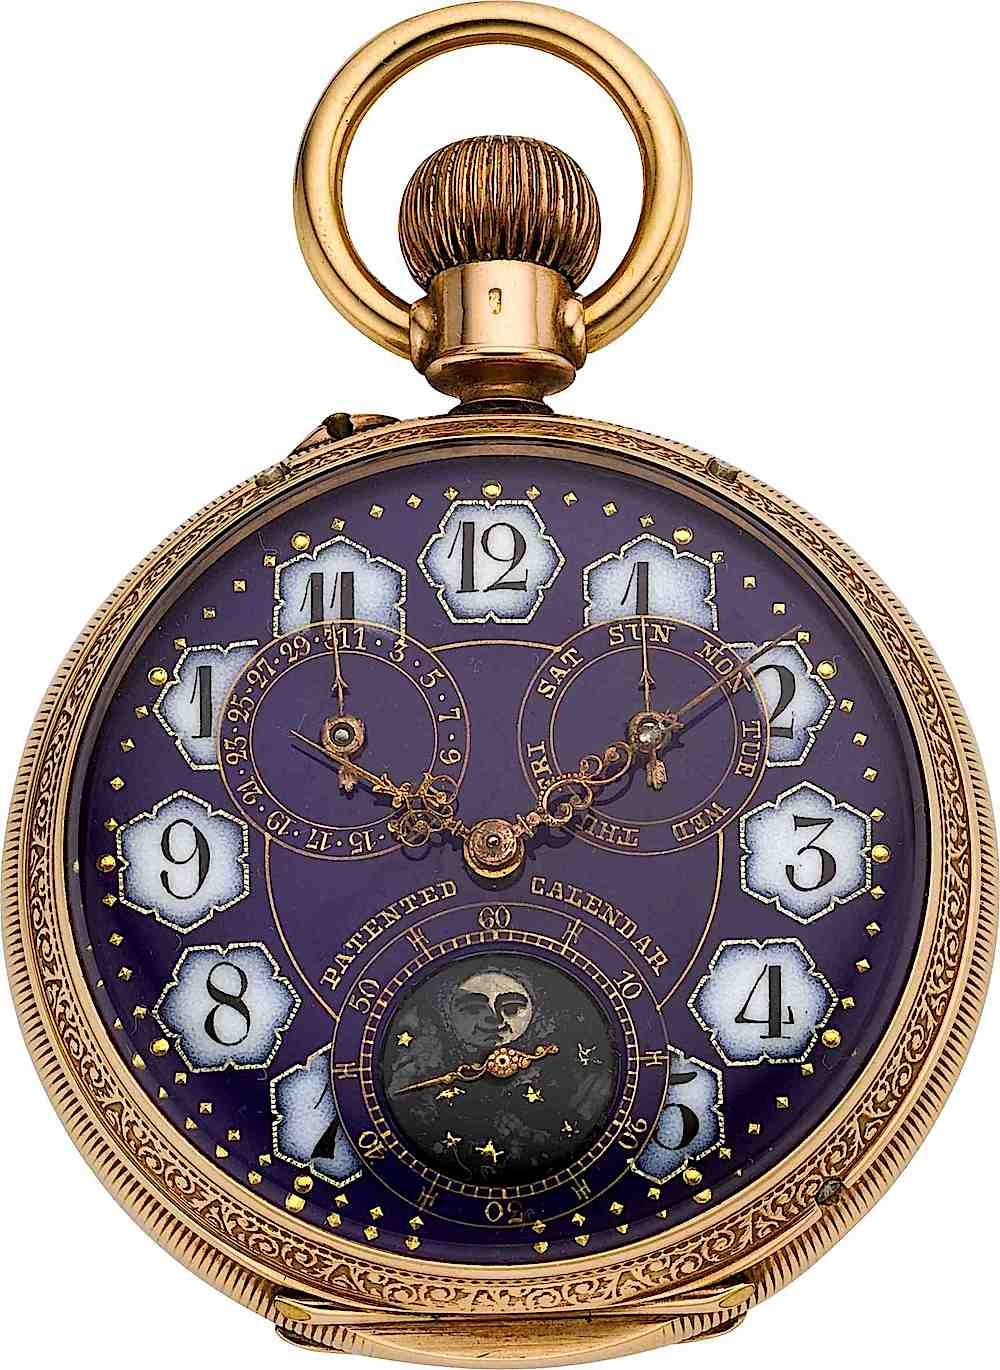 an 1895 watch with a purple face